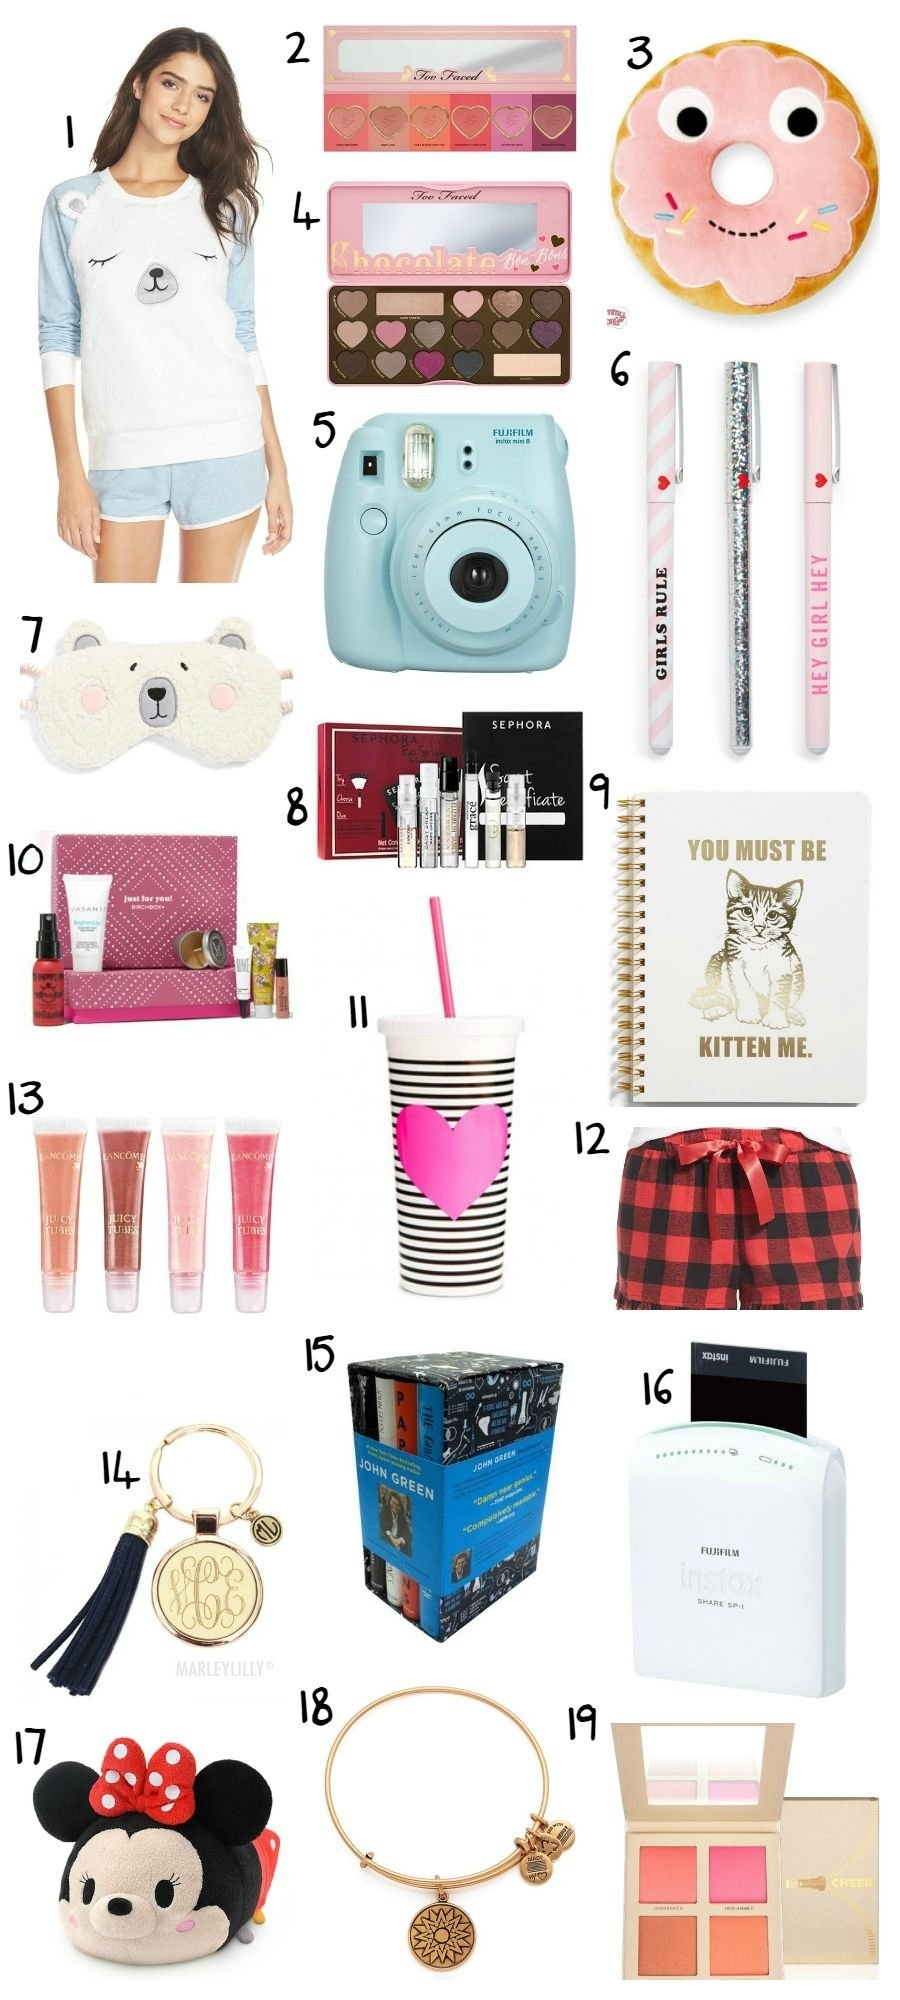 10 Great Christmas Ideas For Teenage Girls